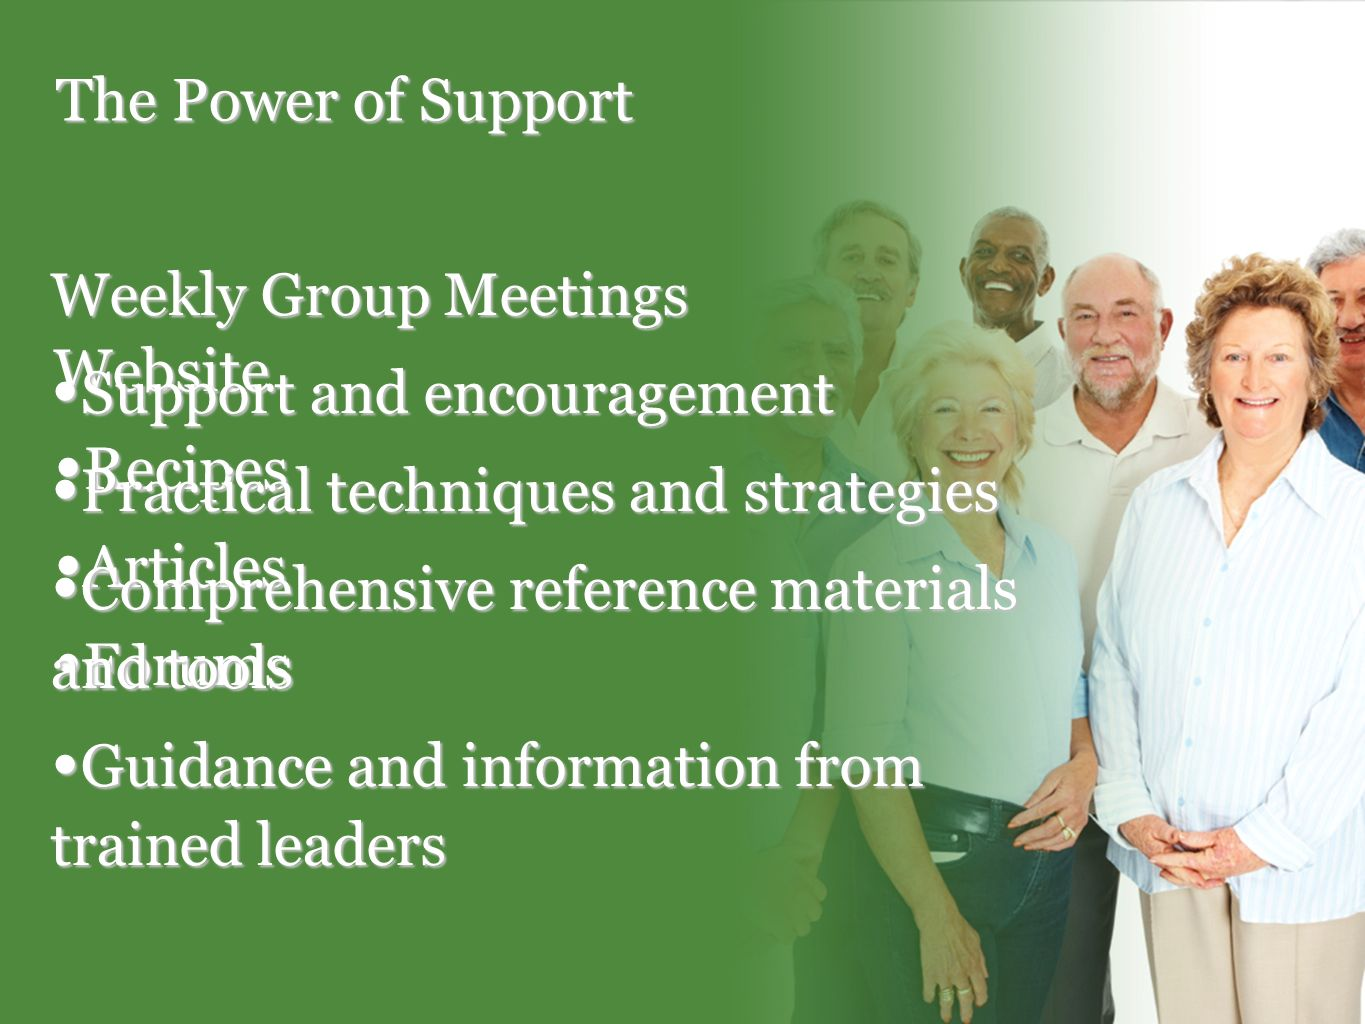 The Power of Support Website Recipes Recipes Articles Articles Forums Forums Weekly Group Meetings Support and encouragement Support and encouragement Practical techniques and strategies Practical techniques and strategies Comprehensive reference materials and tools Comprehensive reference materials and tools Guidance and information from trained leaders Guidance and information from trained leaders